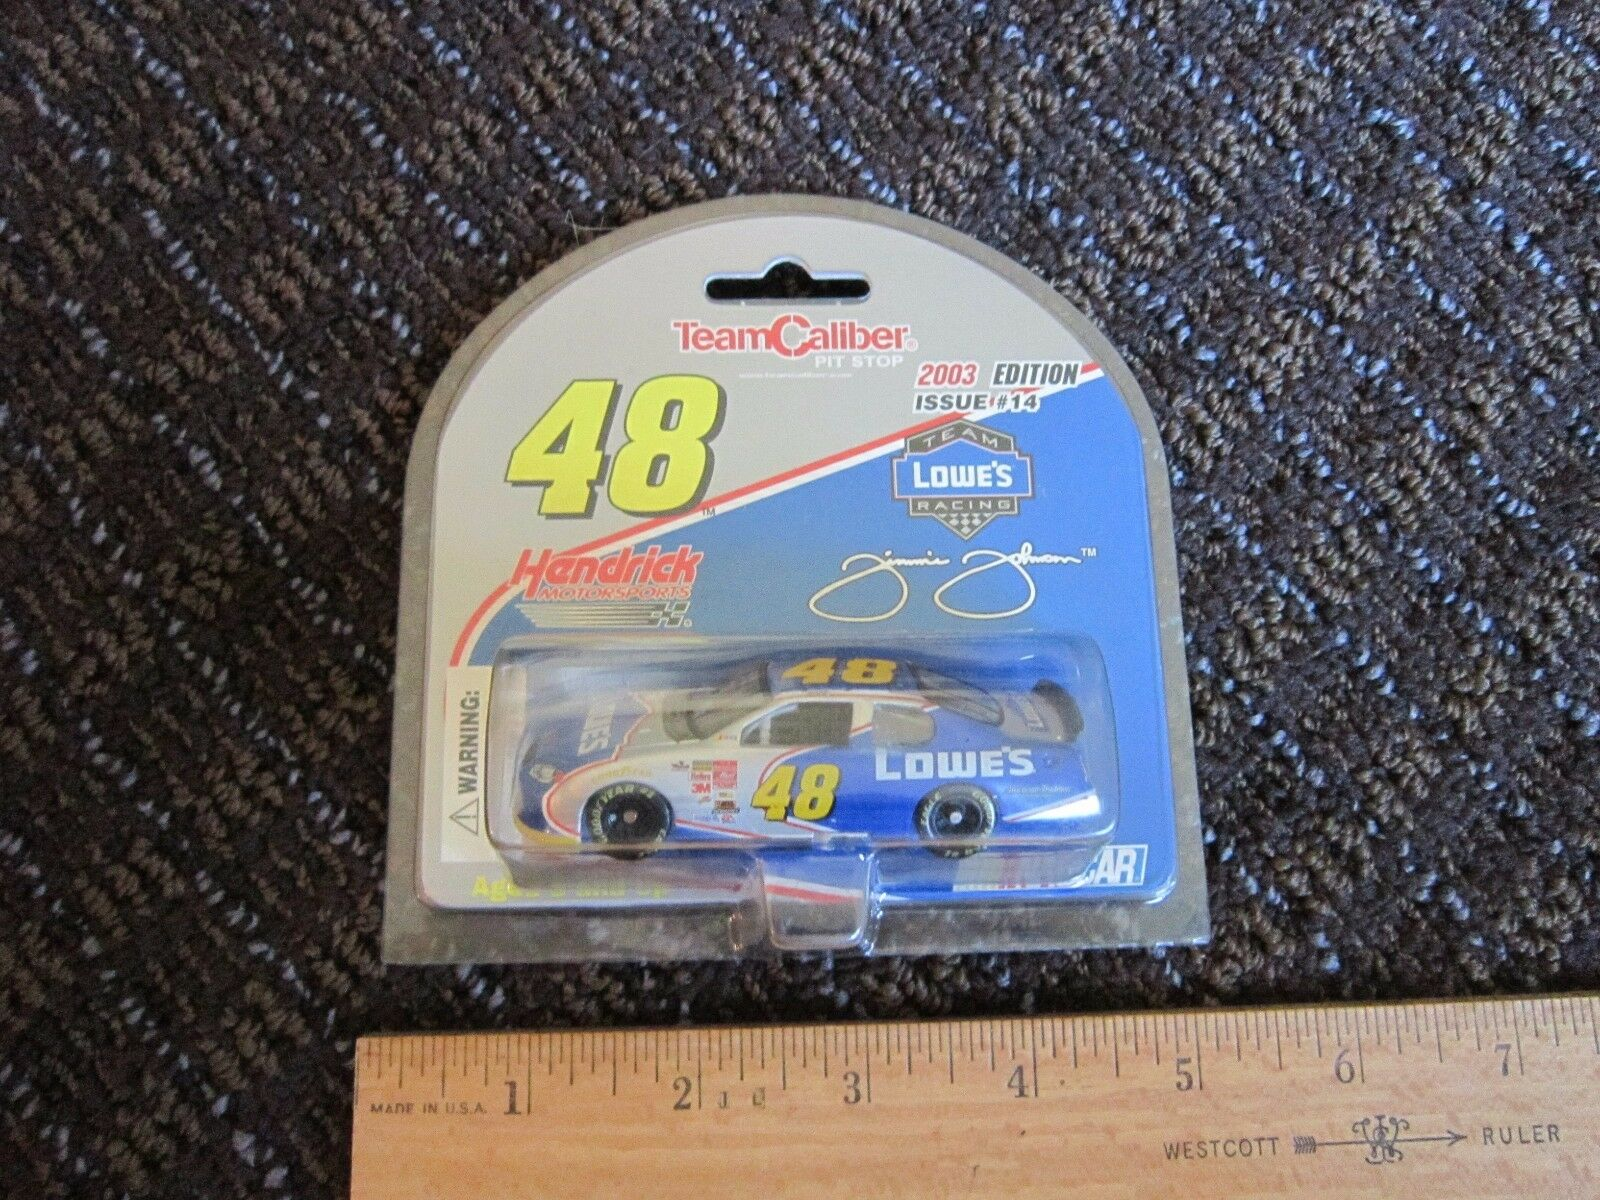 NASCAR Team Caliber Pit Stop 2003 Edition Issue Team Lowe's  64 Diecast